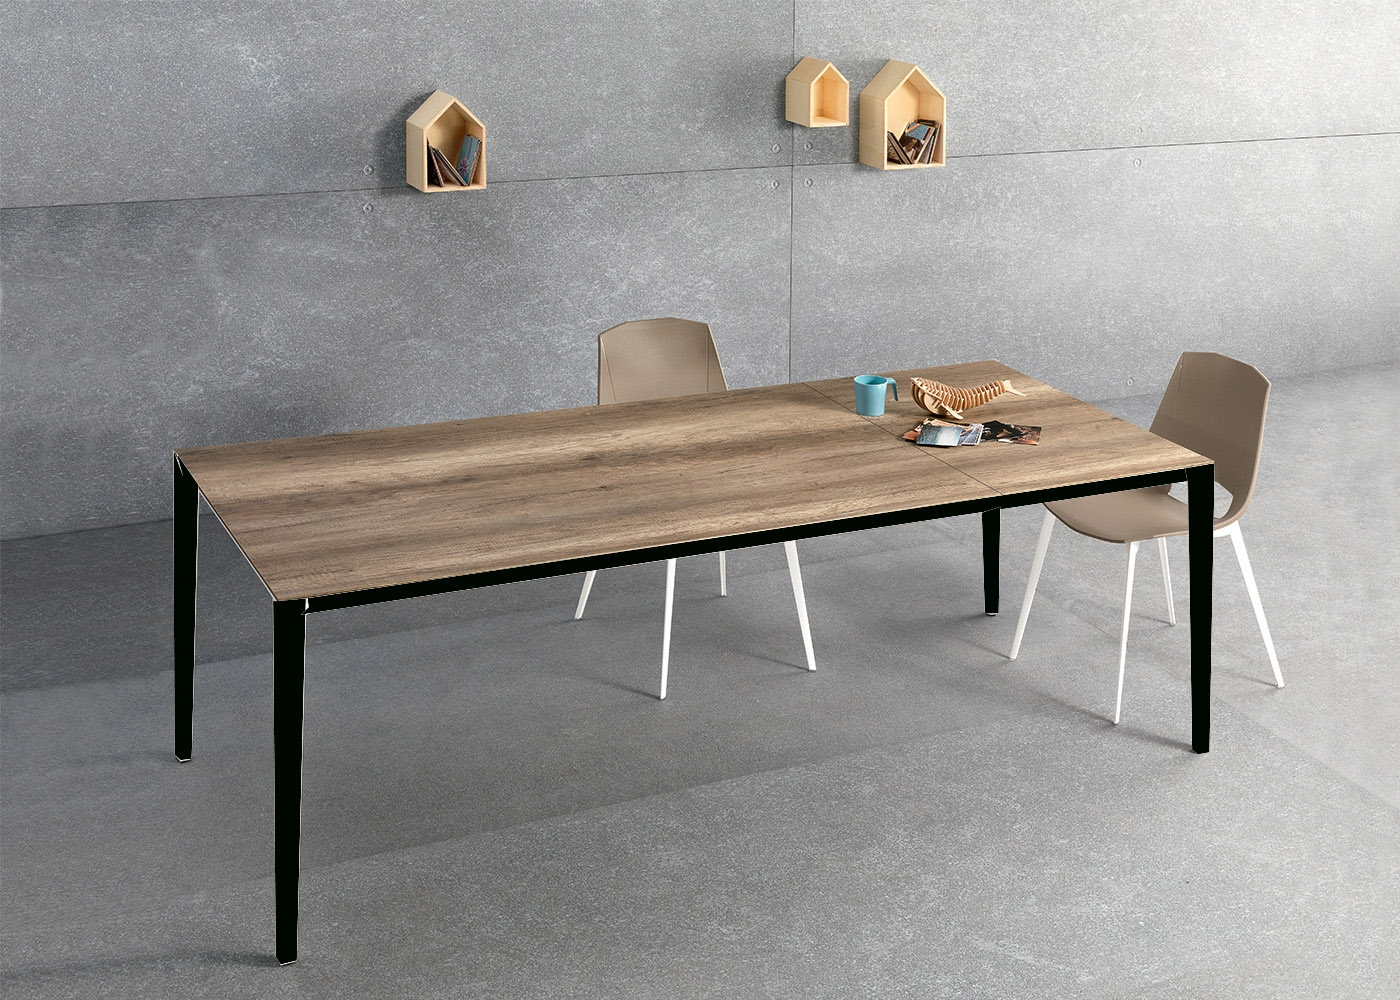 Table de repas en ch ne ou noyer au design sobre et for Table de salle a manger 140 cm